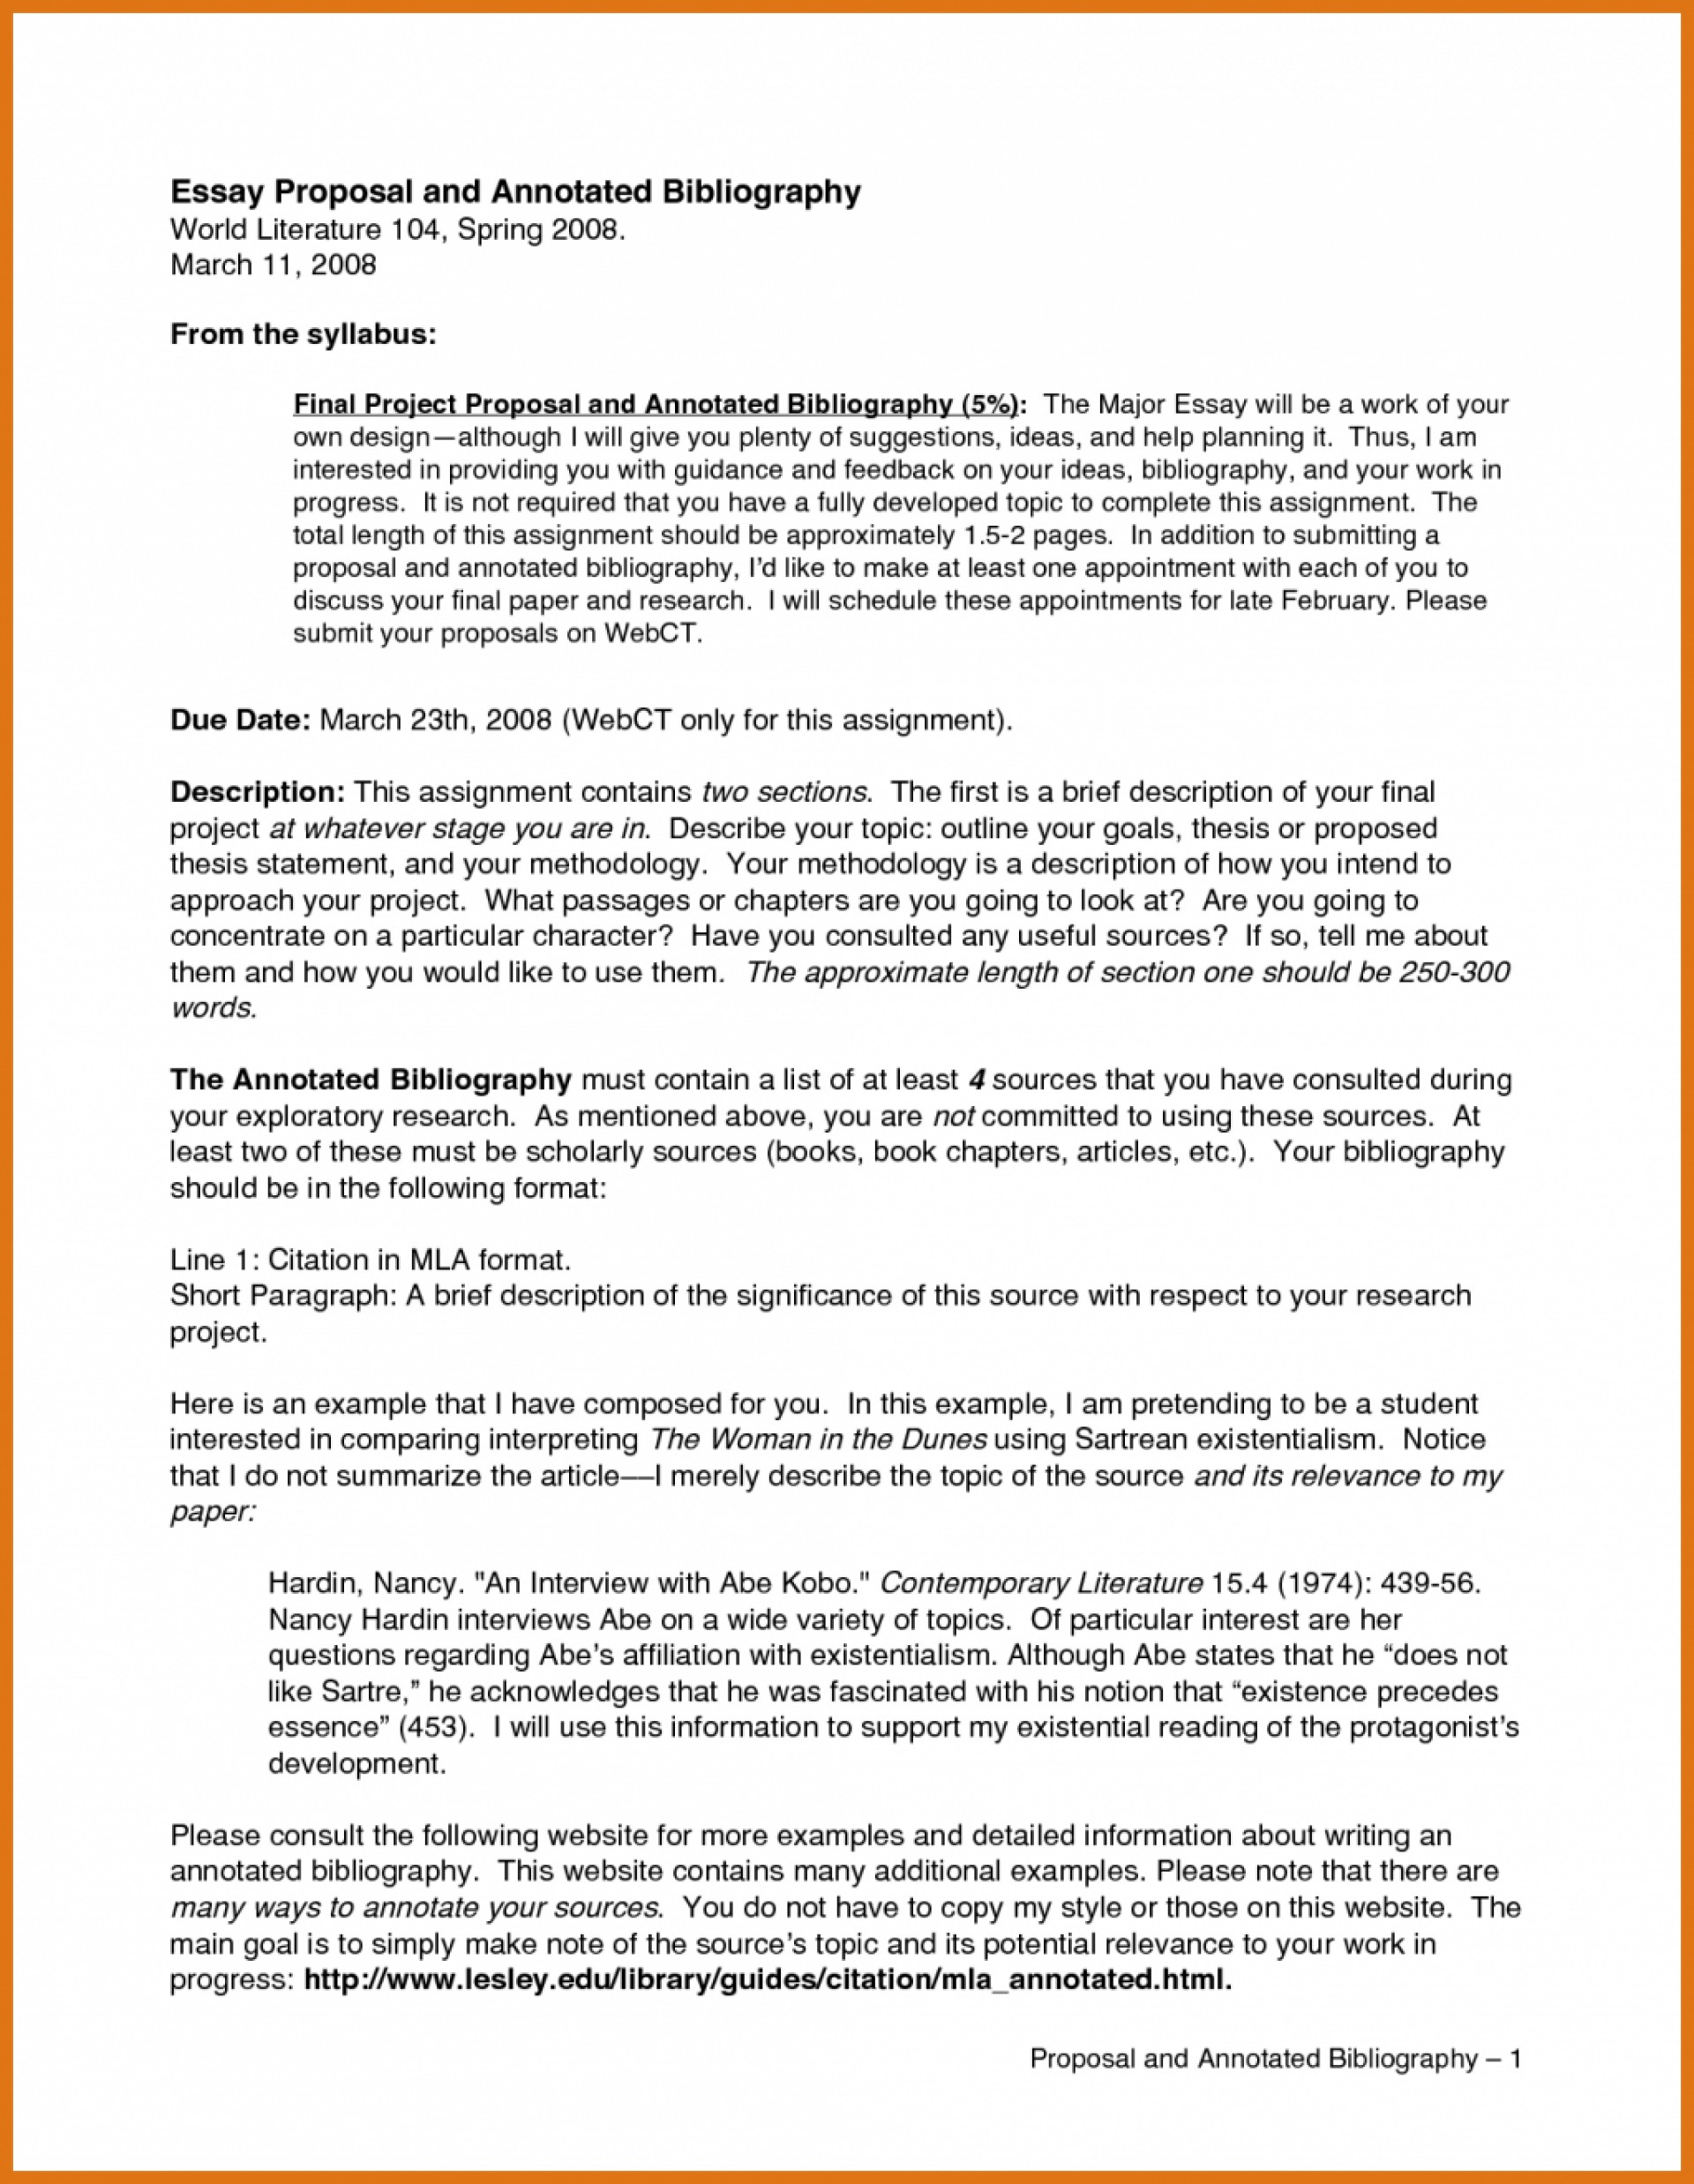 017 Research Paper Bunch Ideas Of Chicago Style Essays Citation Essay How To Cite Sources Mla Format Excellent Bibliography Sample For Fahrenheit20 1024x1321 Literary Magnificent Topic Examples 1920